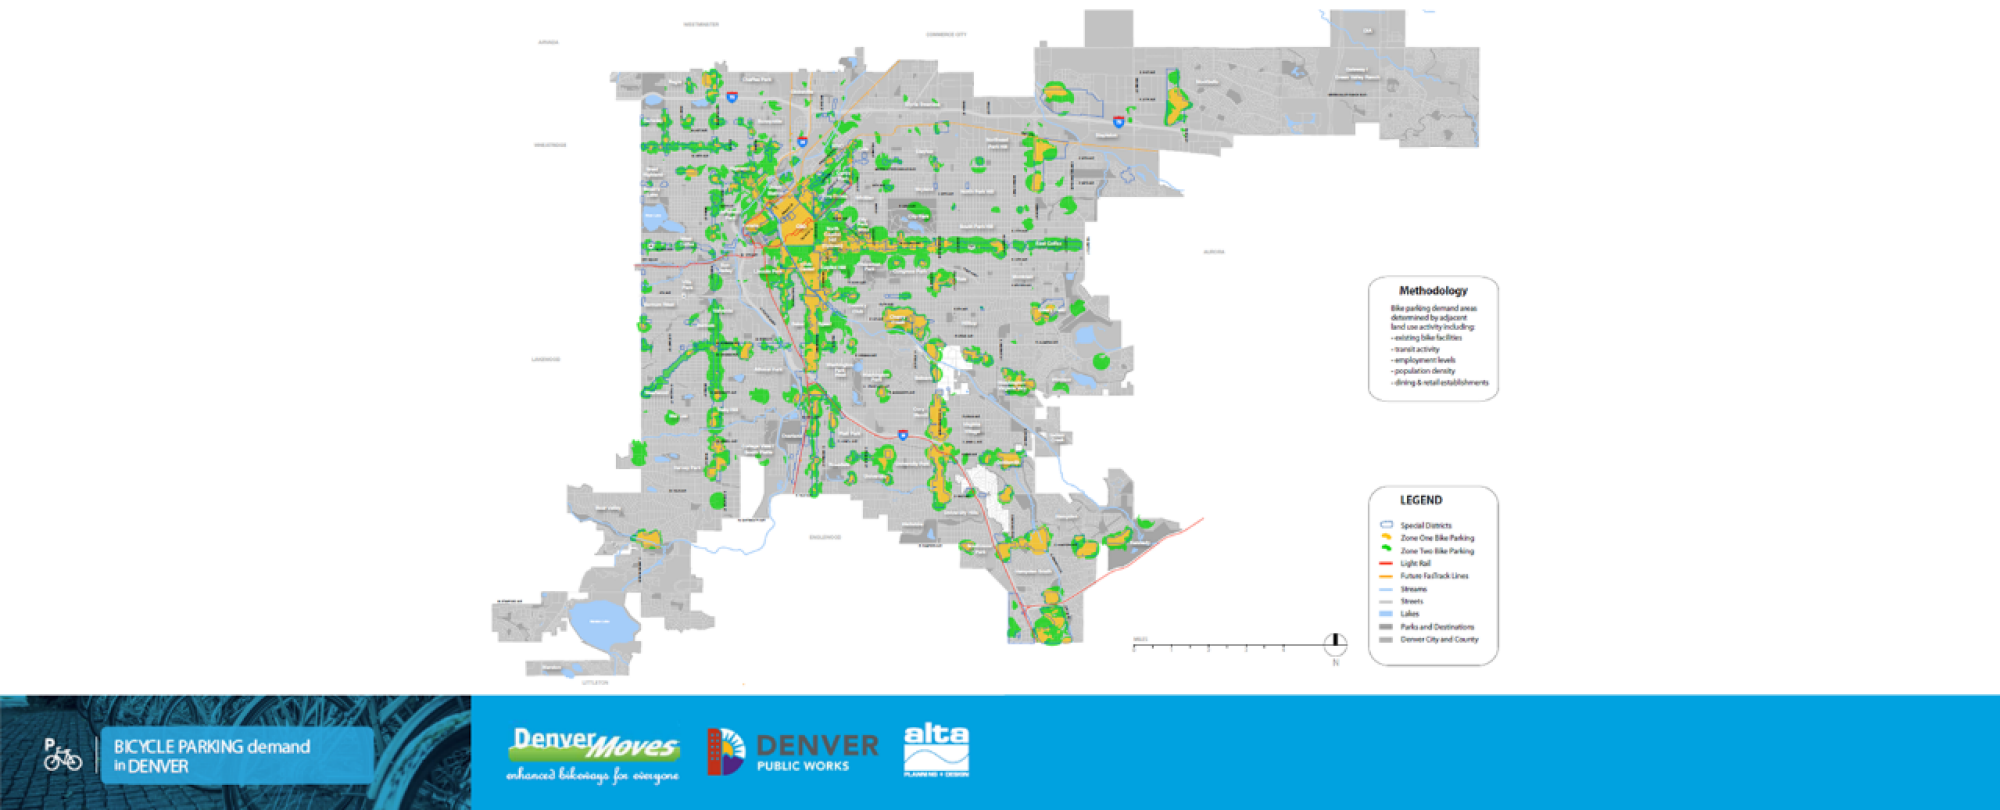 map of bicycle parking demand in denver county